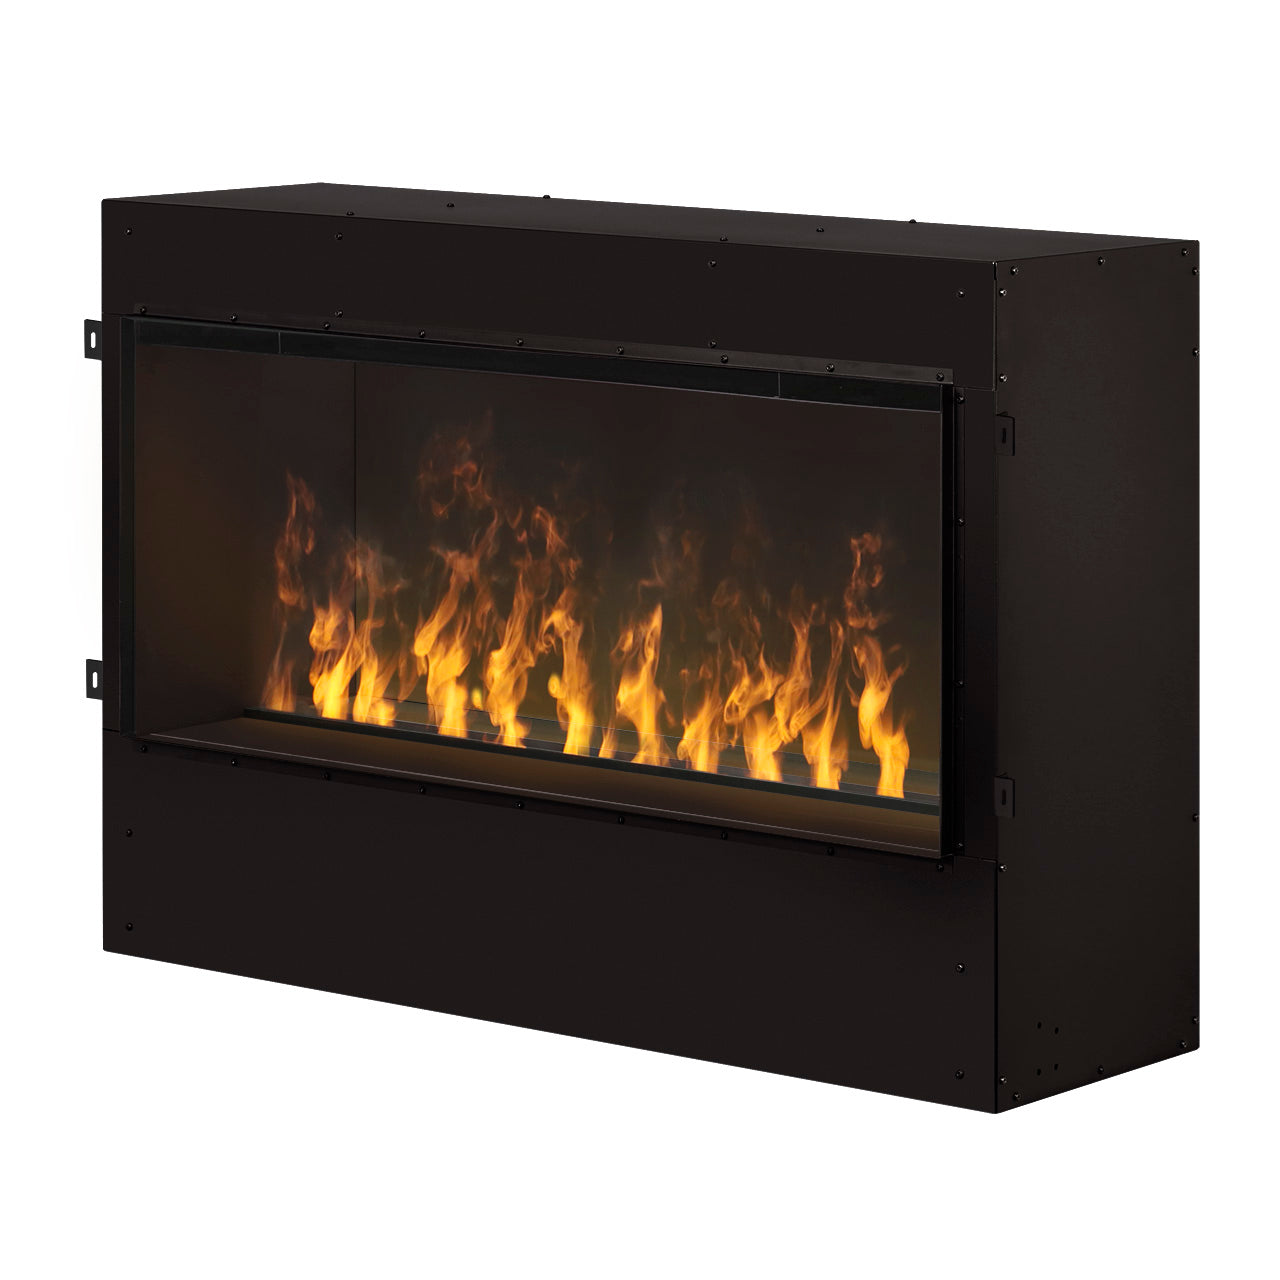 Opti-myst® Pro 1000 Built-in Electric Firebox